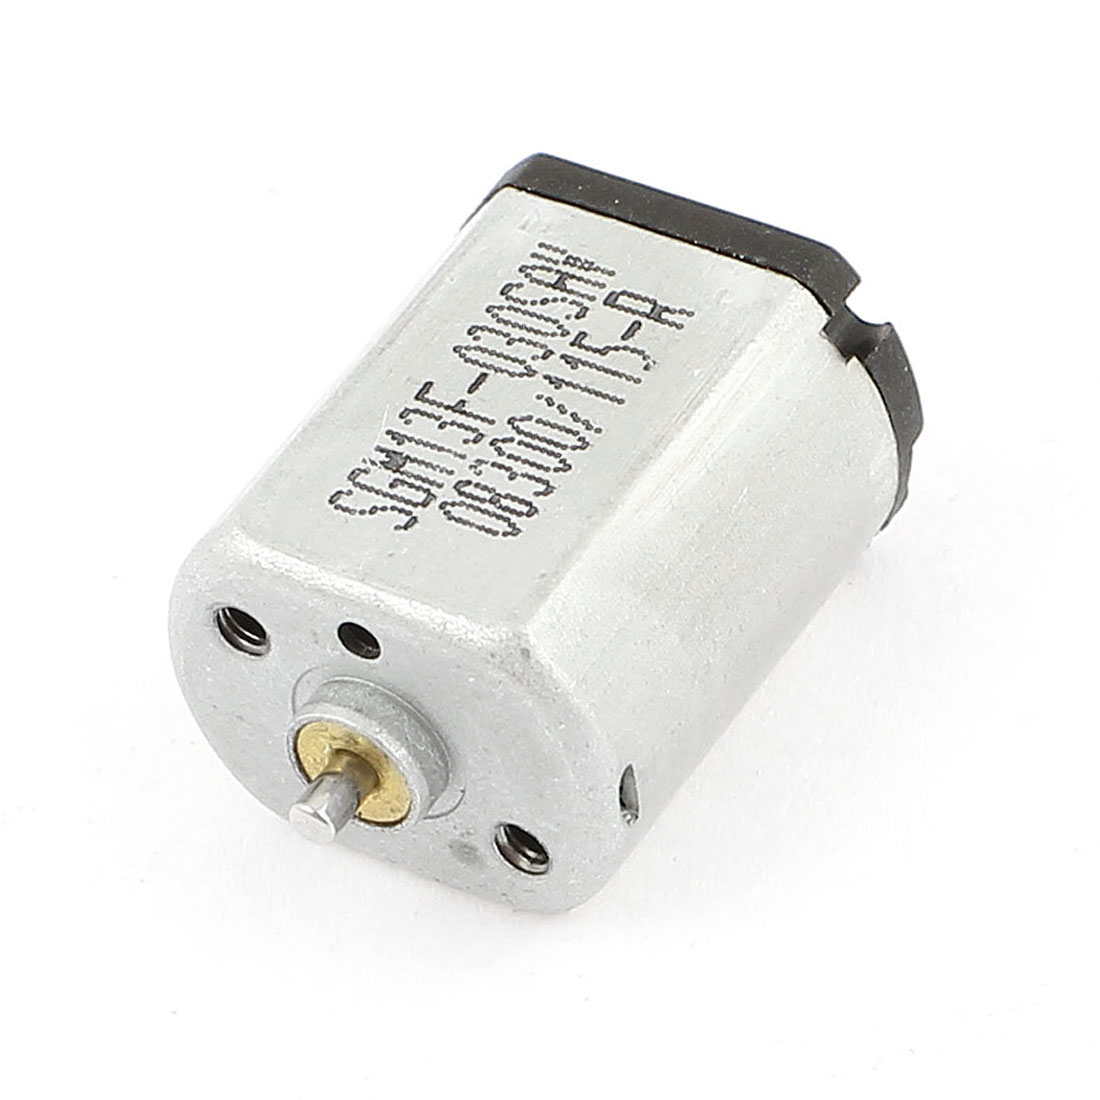 DC 1.5-6V 6000-12000RPM Mini Motor for Car Toys DIY